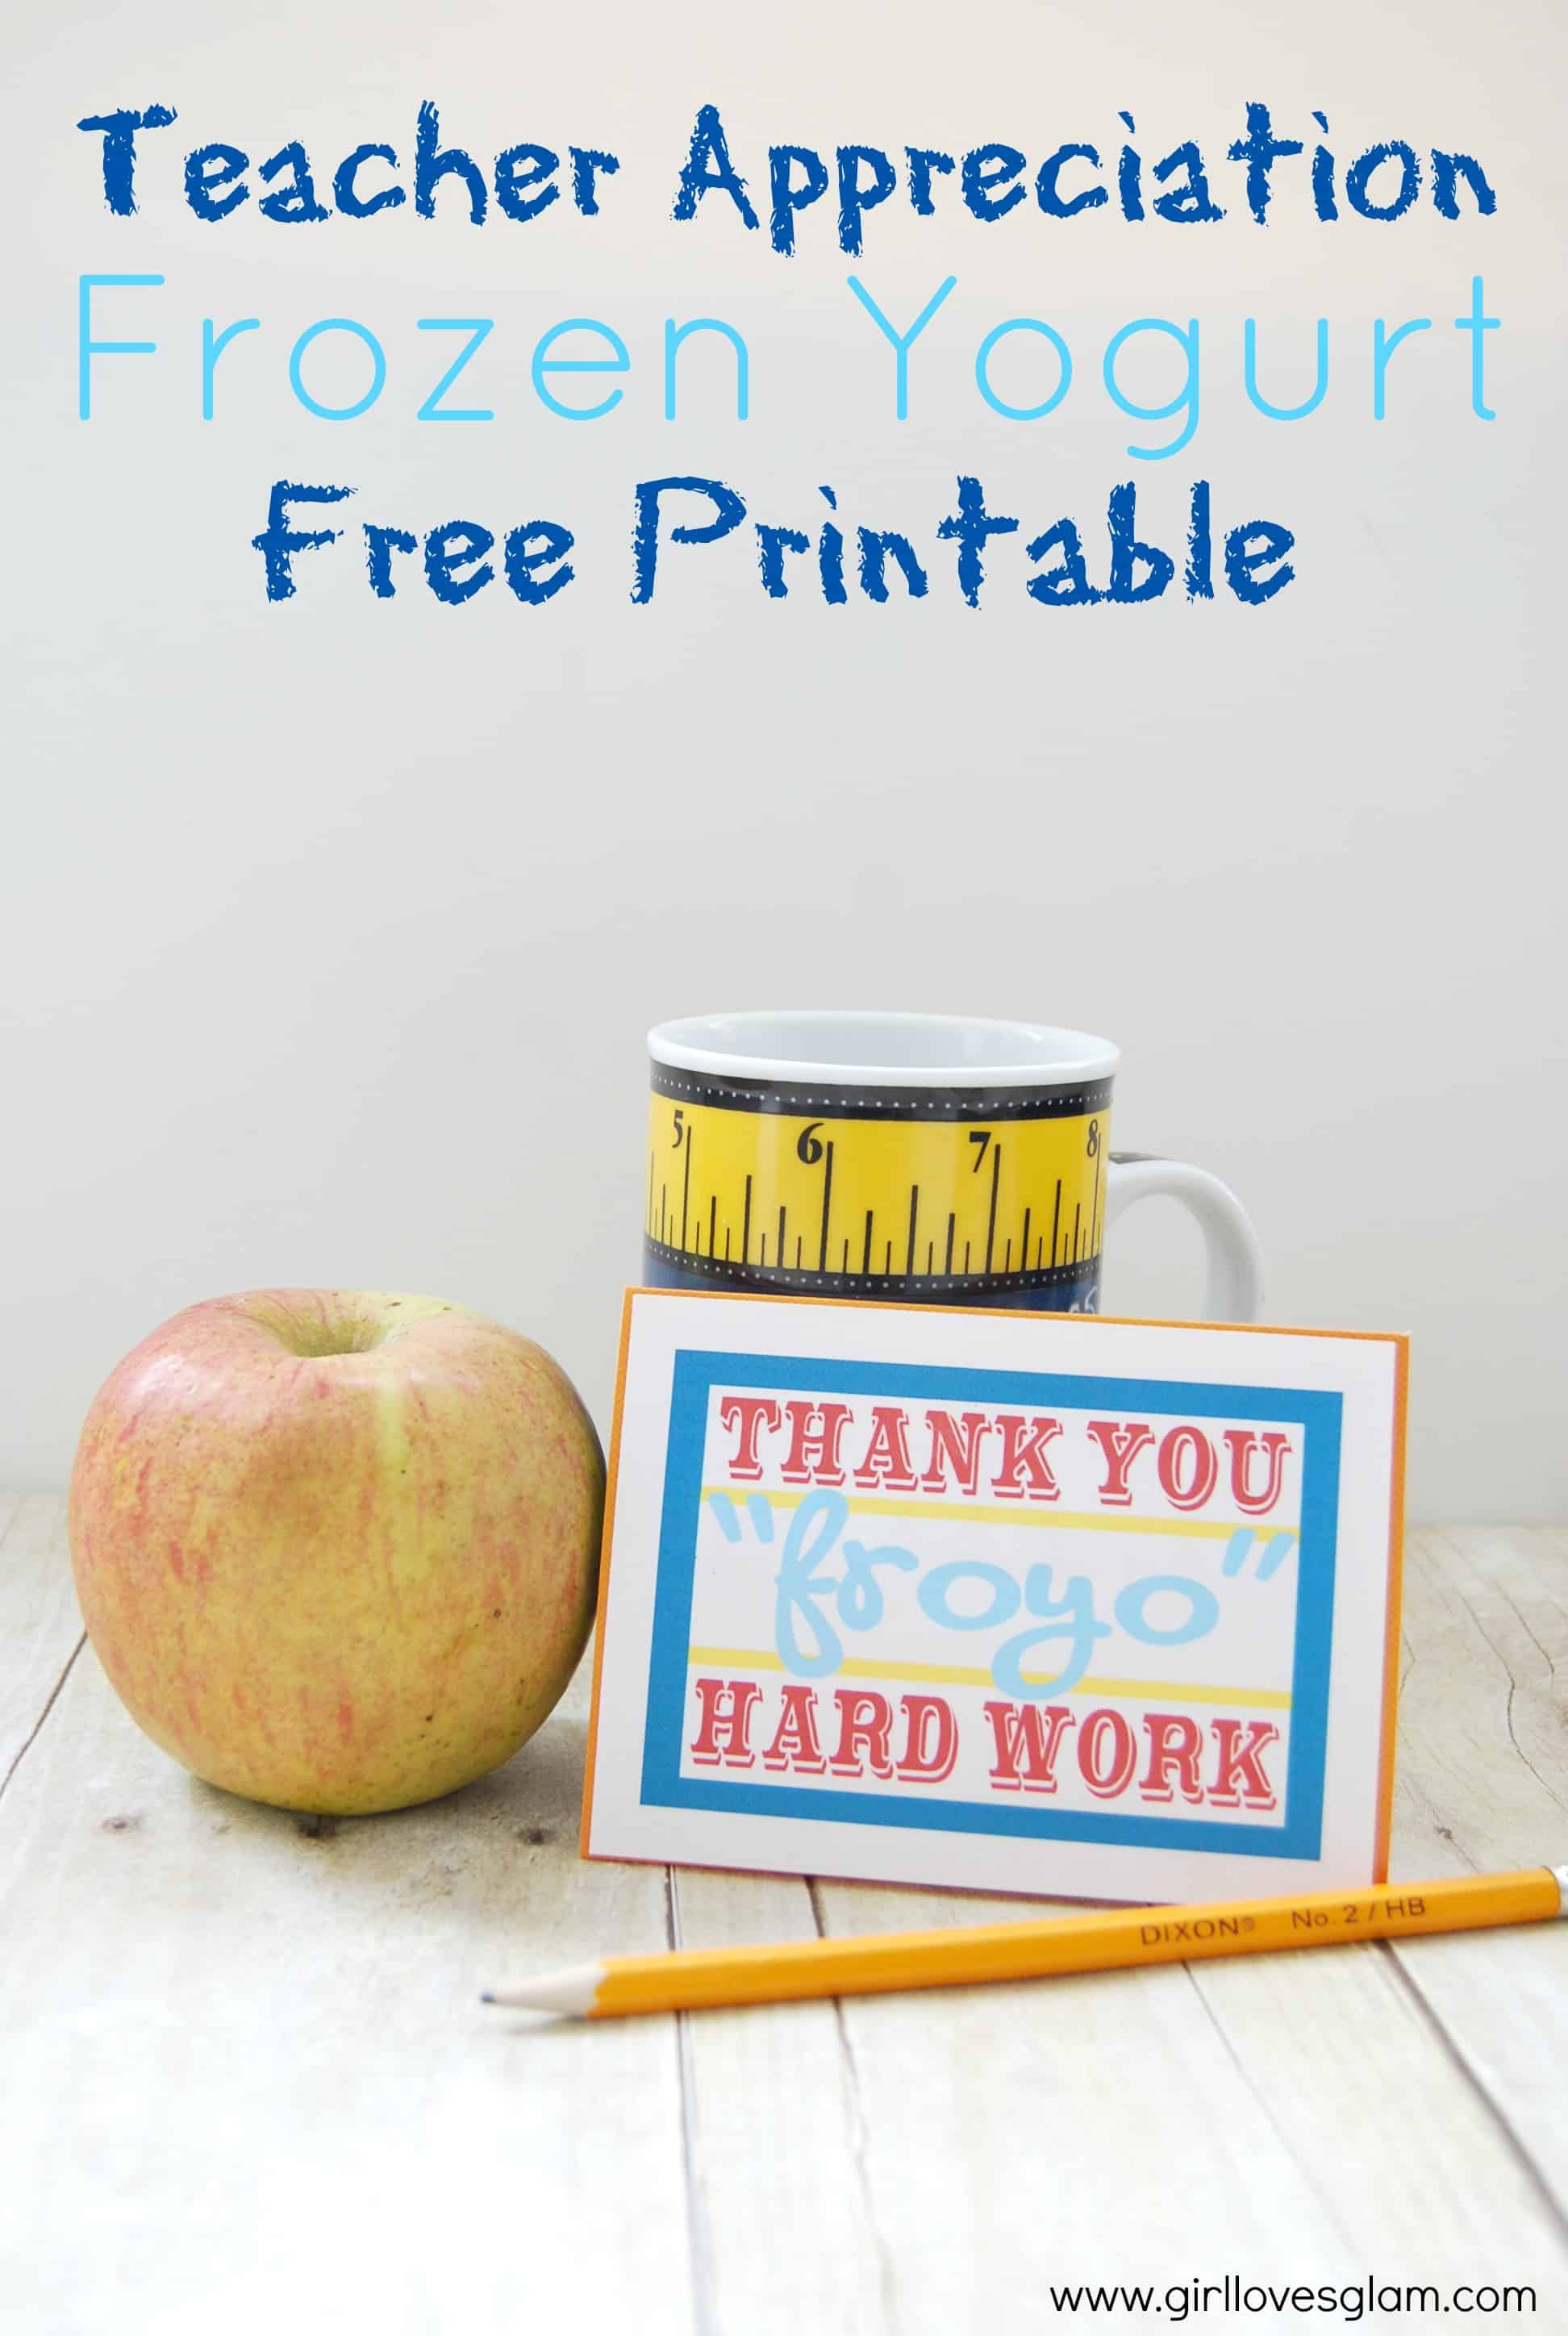 Teacher Appreciation Frozen Yogurt Free Printable on www.girllovesglam